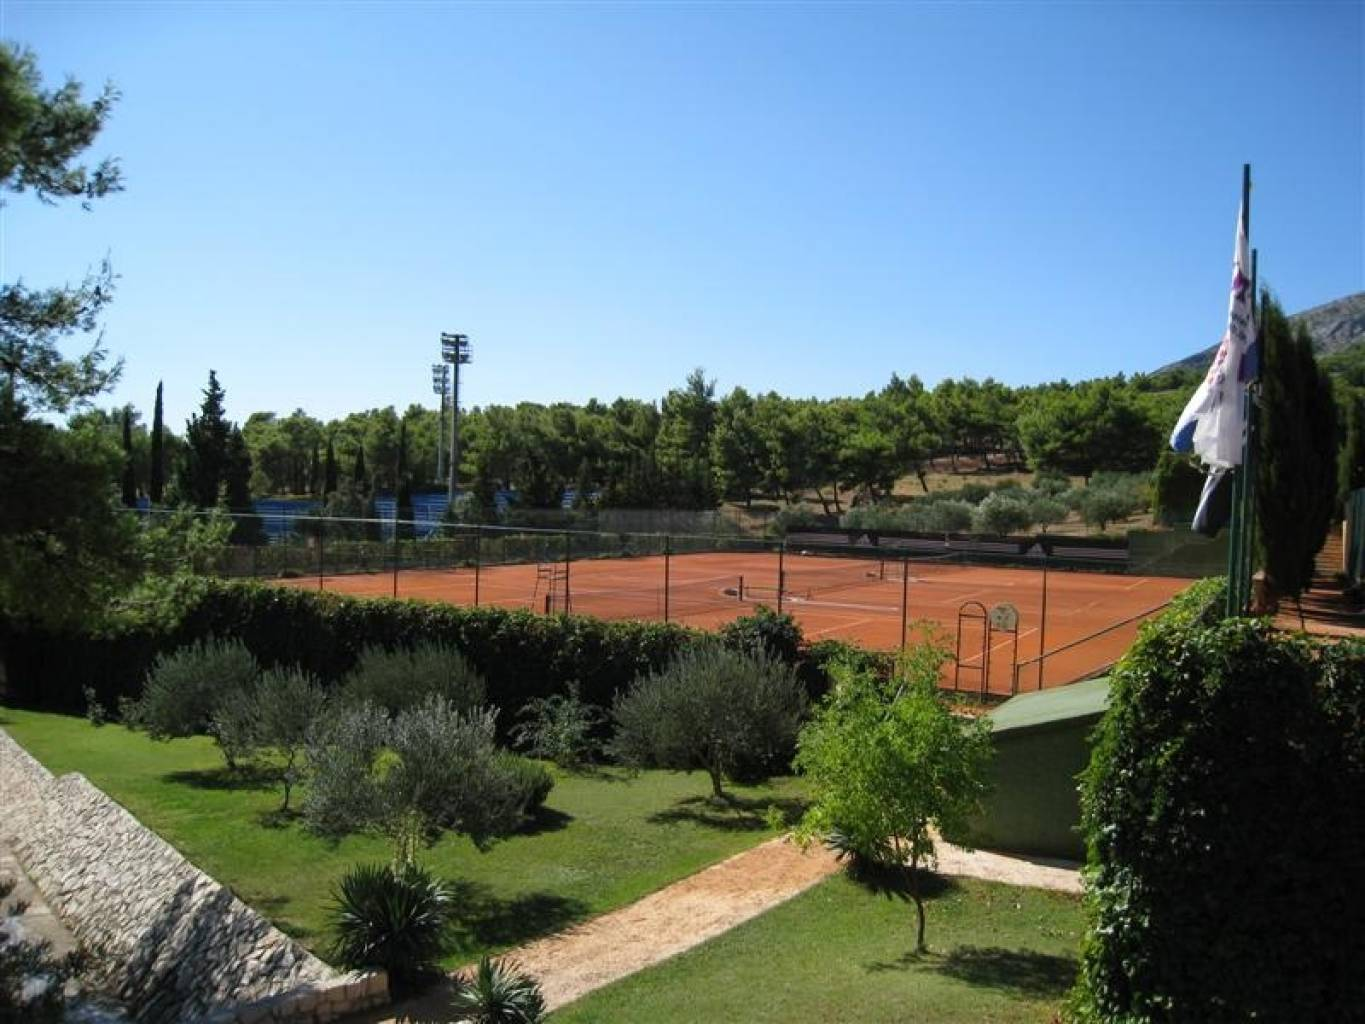 Some of the clay tennis courts